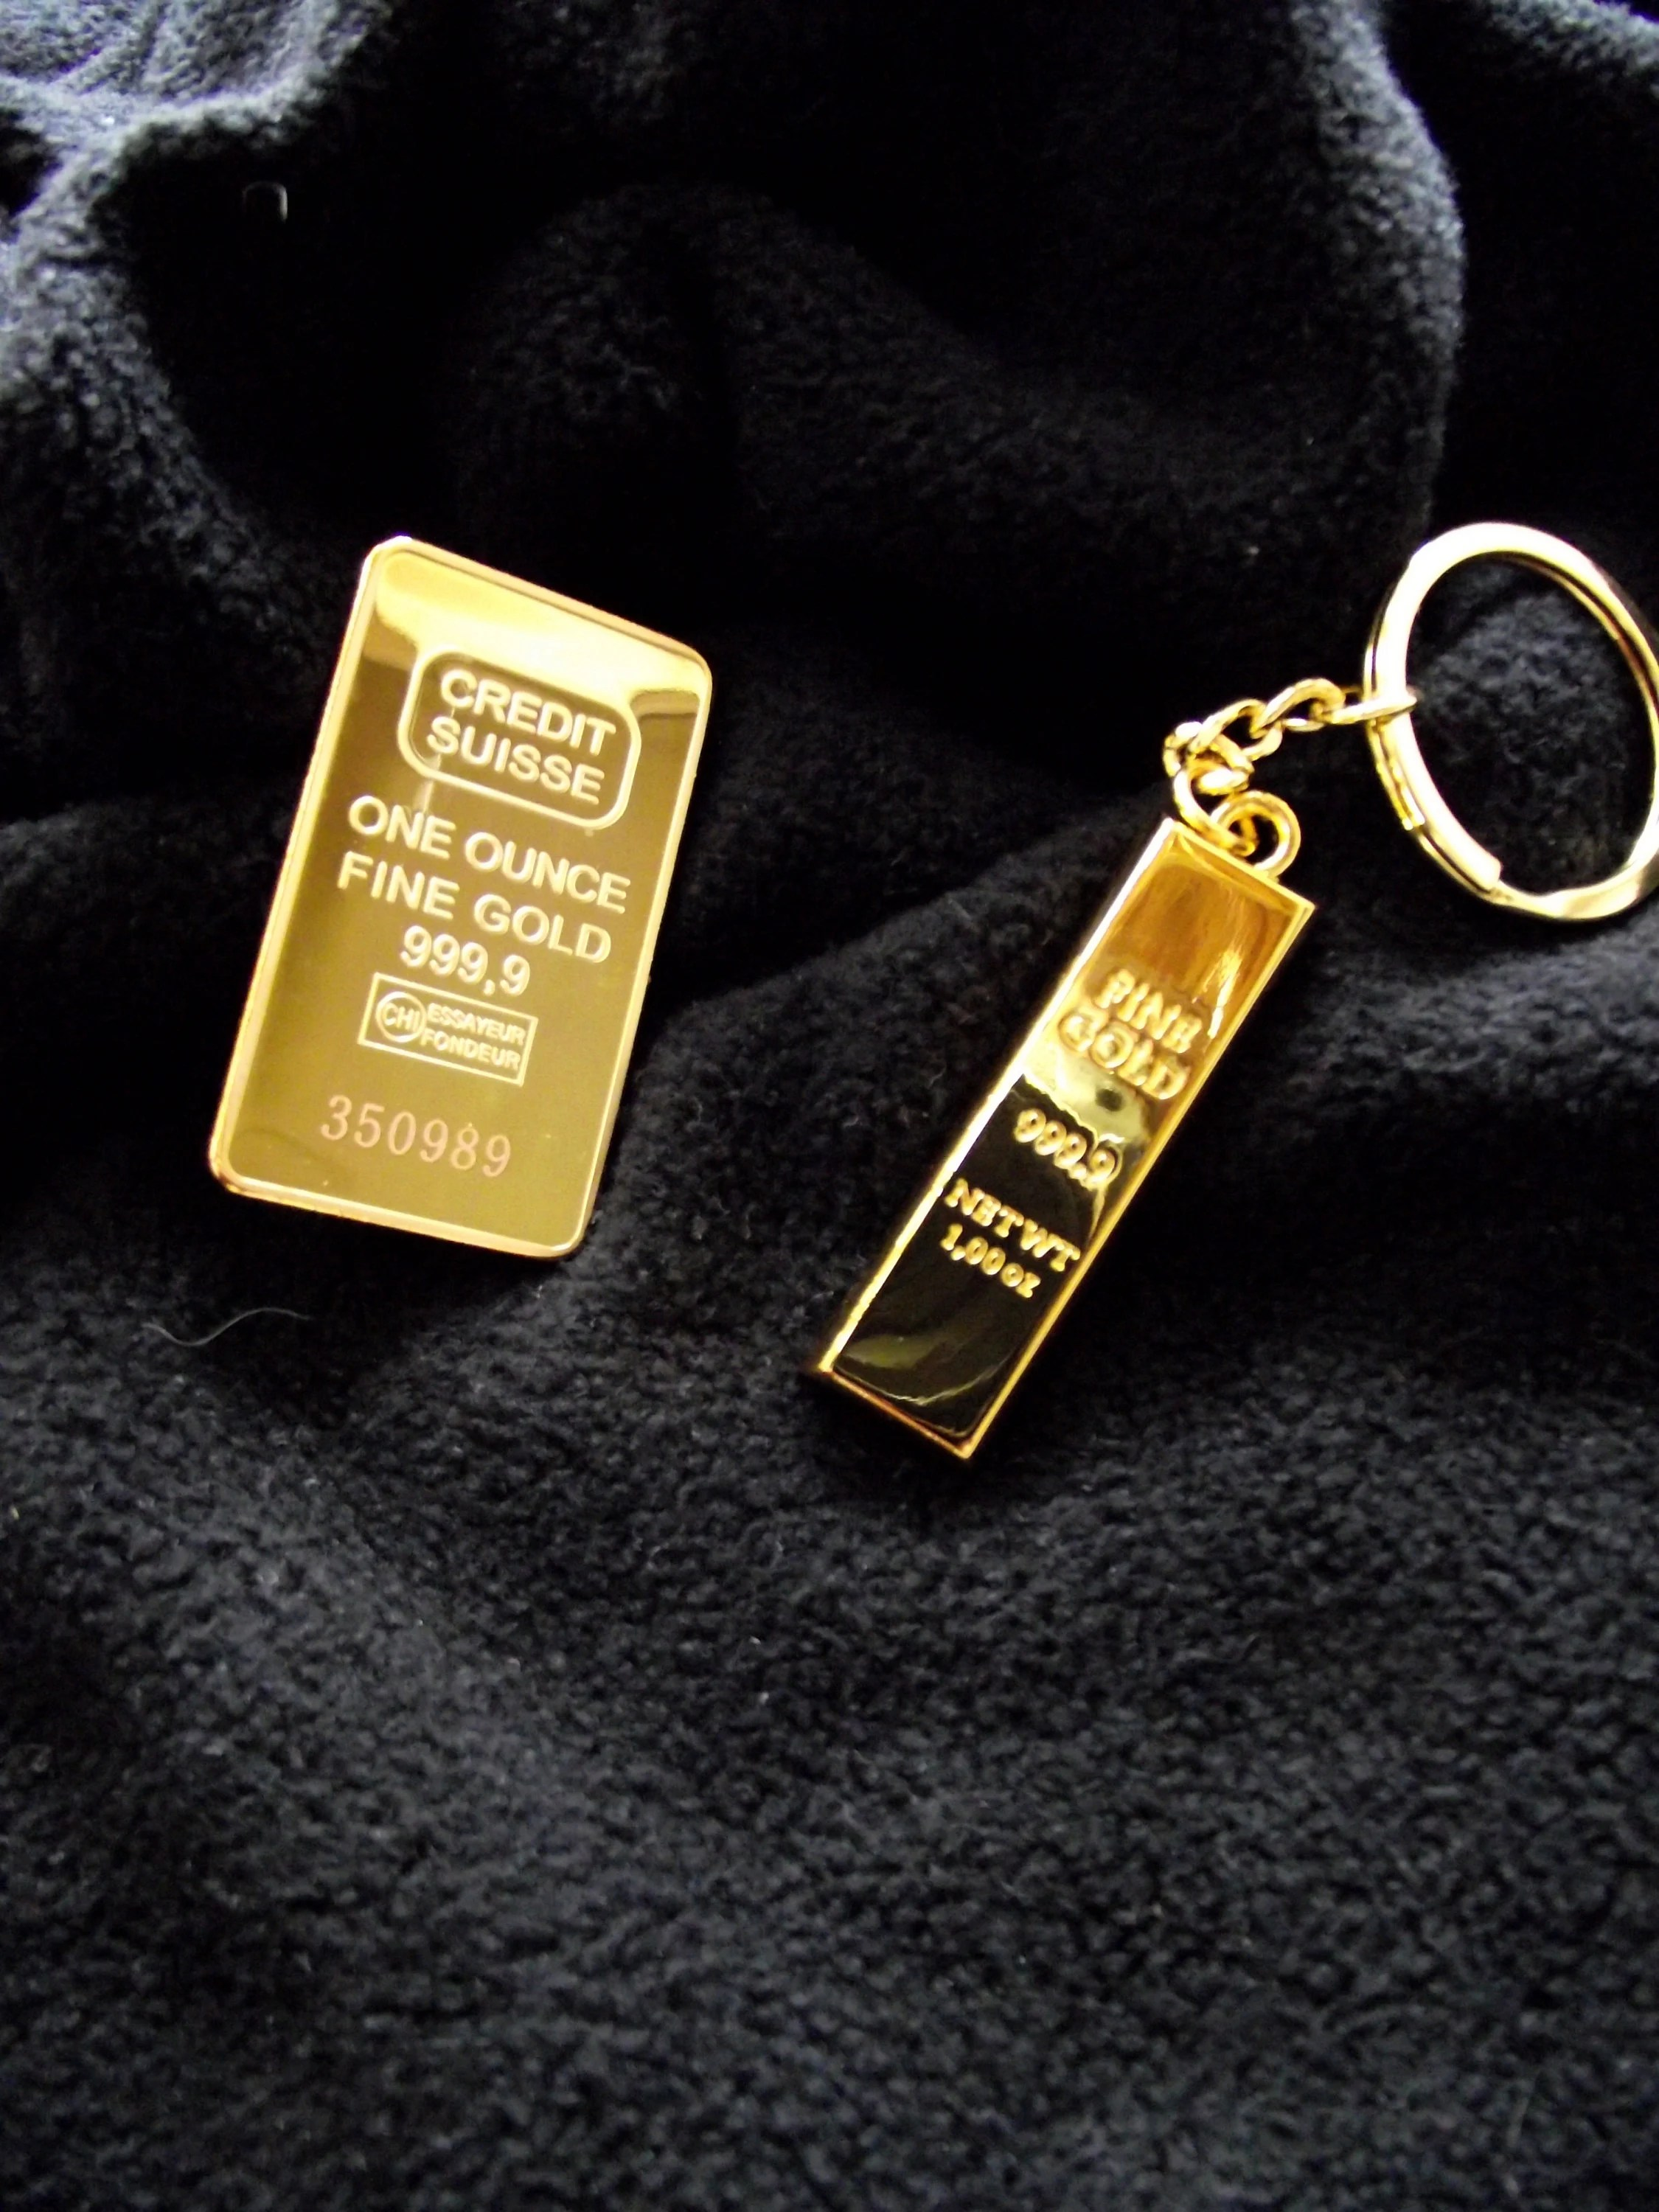 1 Ounce Gold Bar Size : ounce, Consecutive, Serial, NumberedNovelty, BullionCREDIT